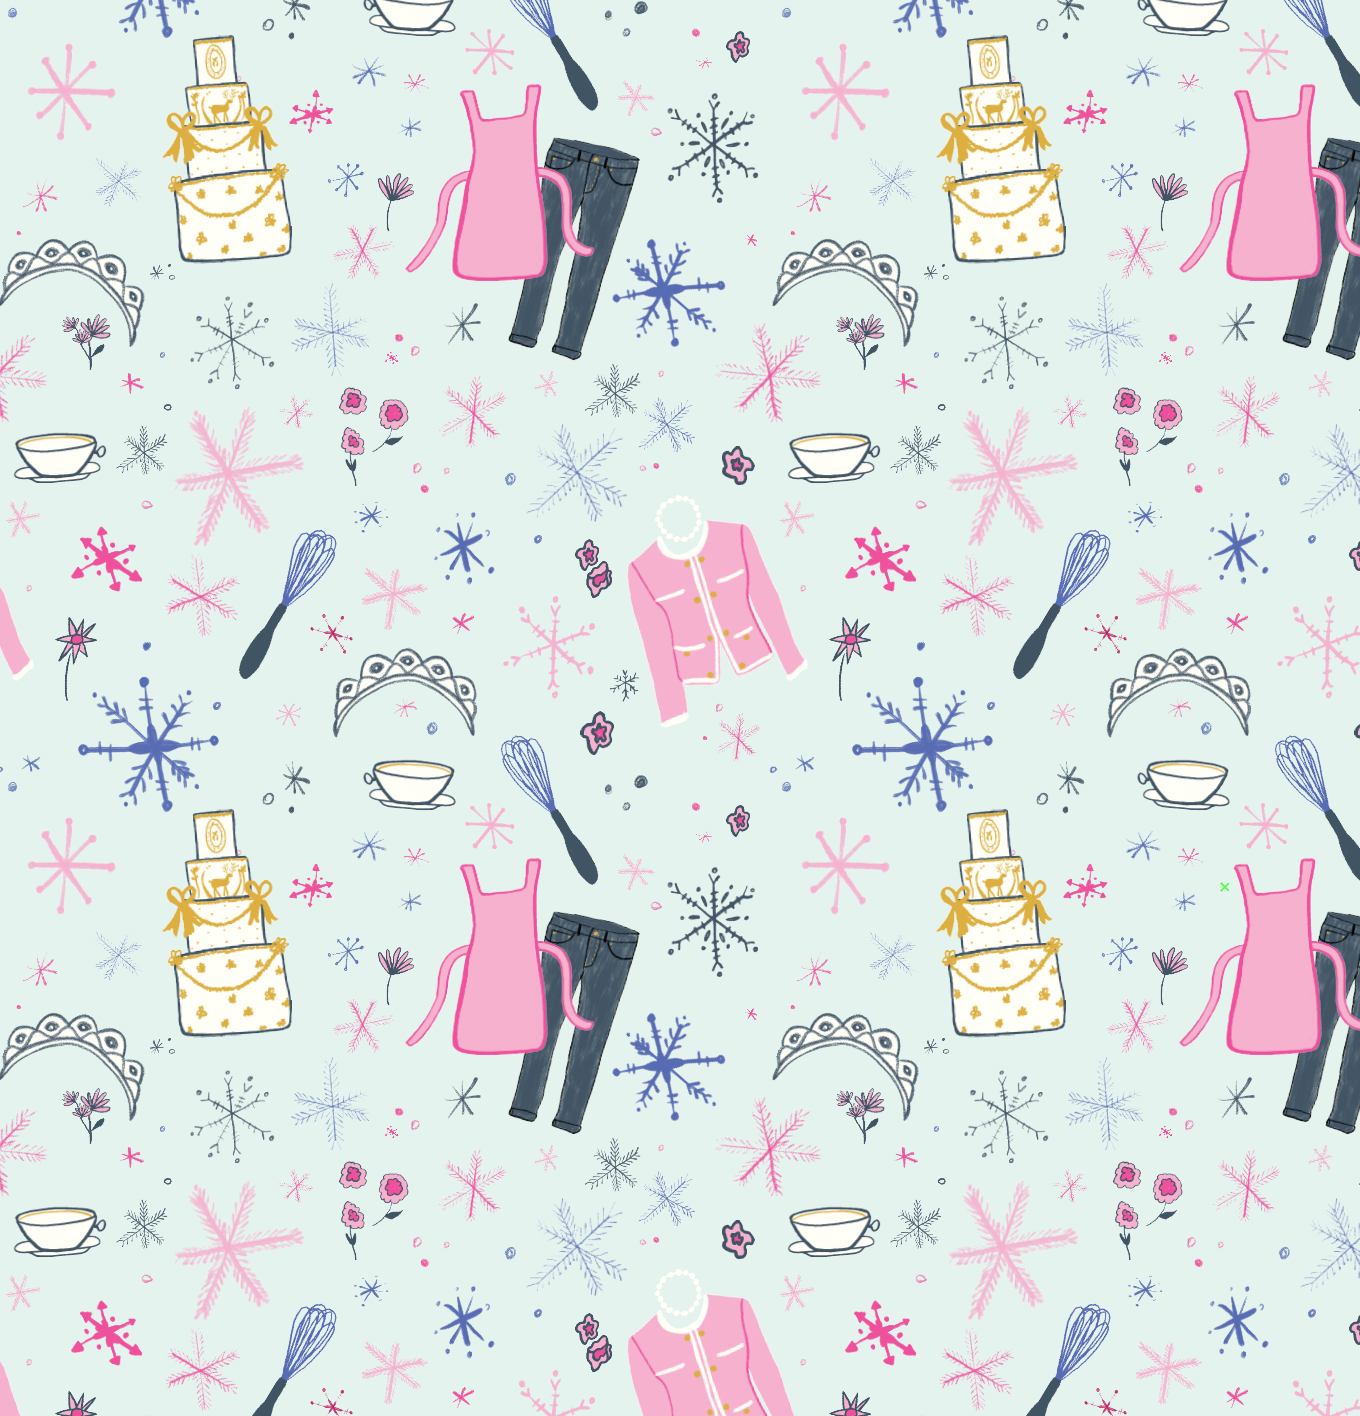 Pattern by Erika Firm for Netflix for The Princess Switch movie